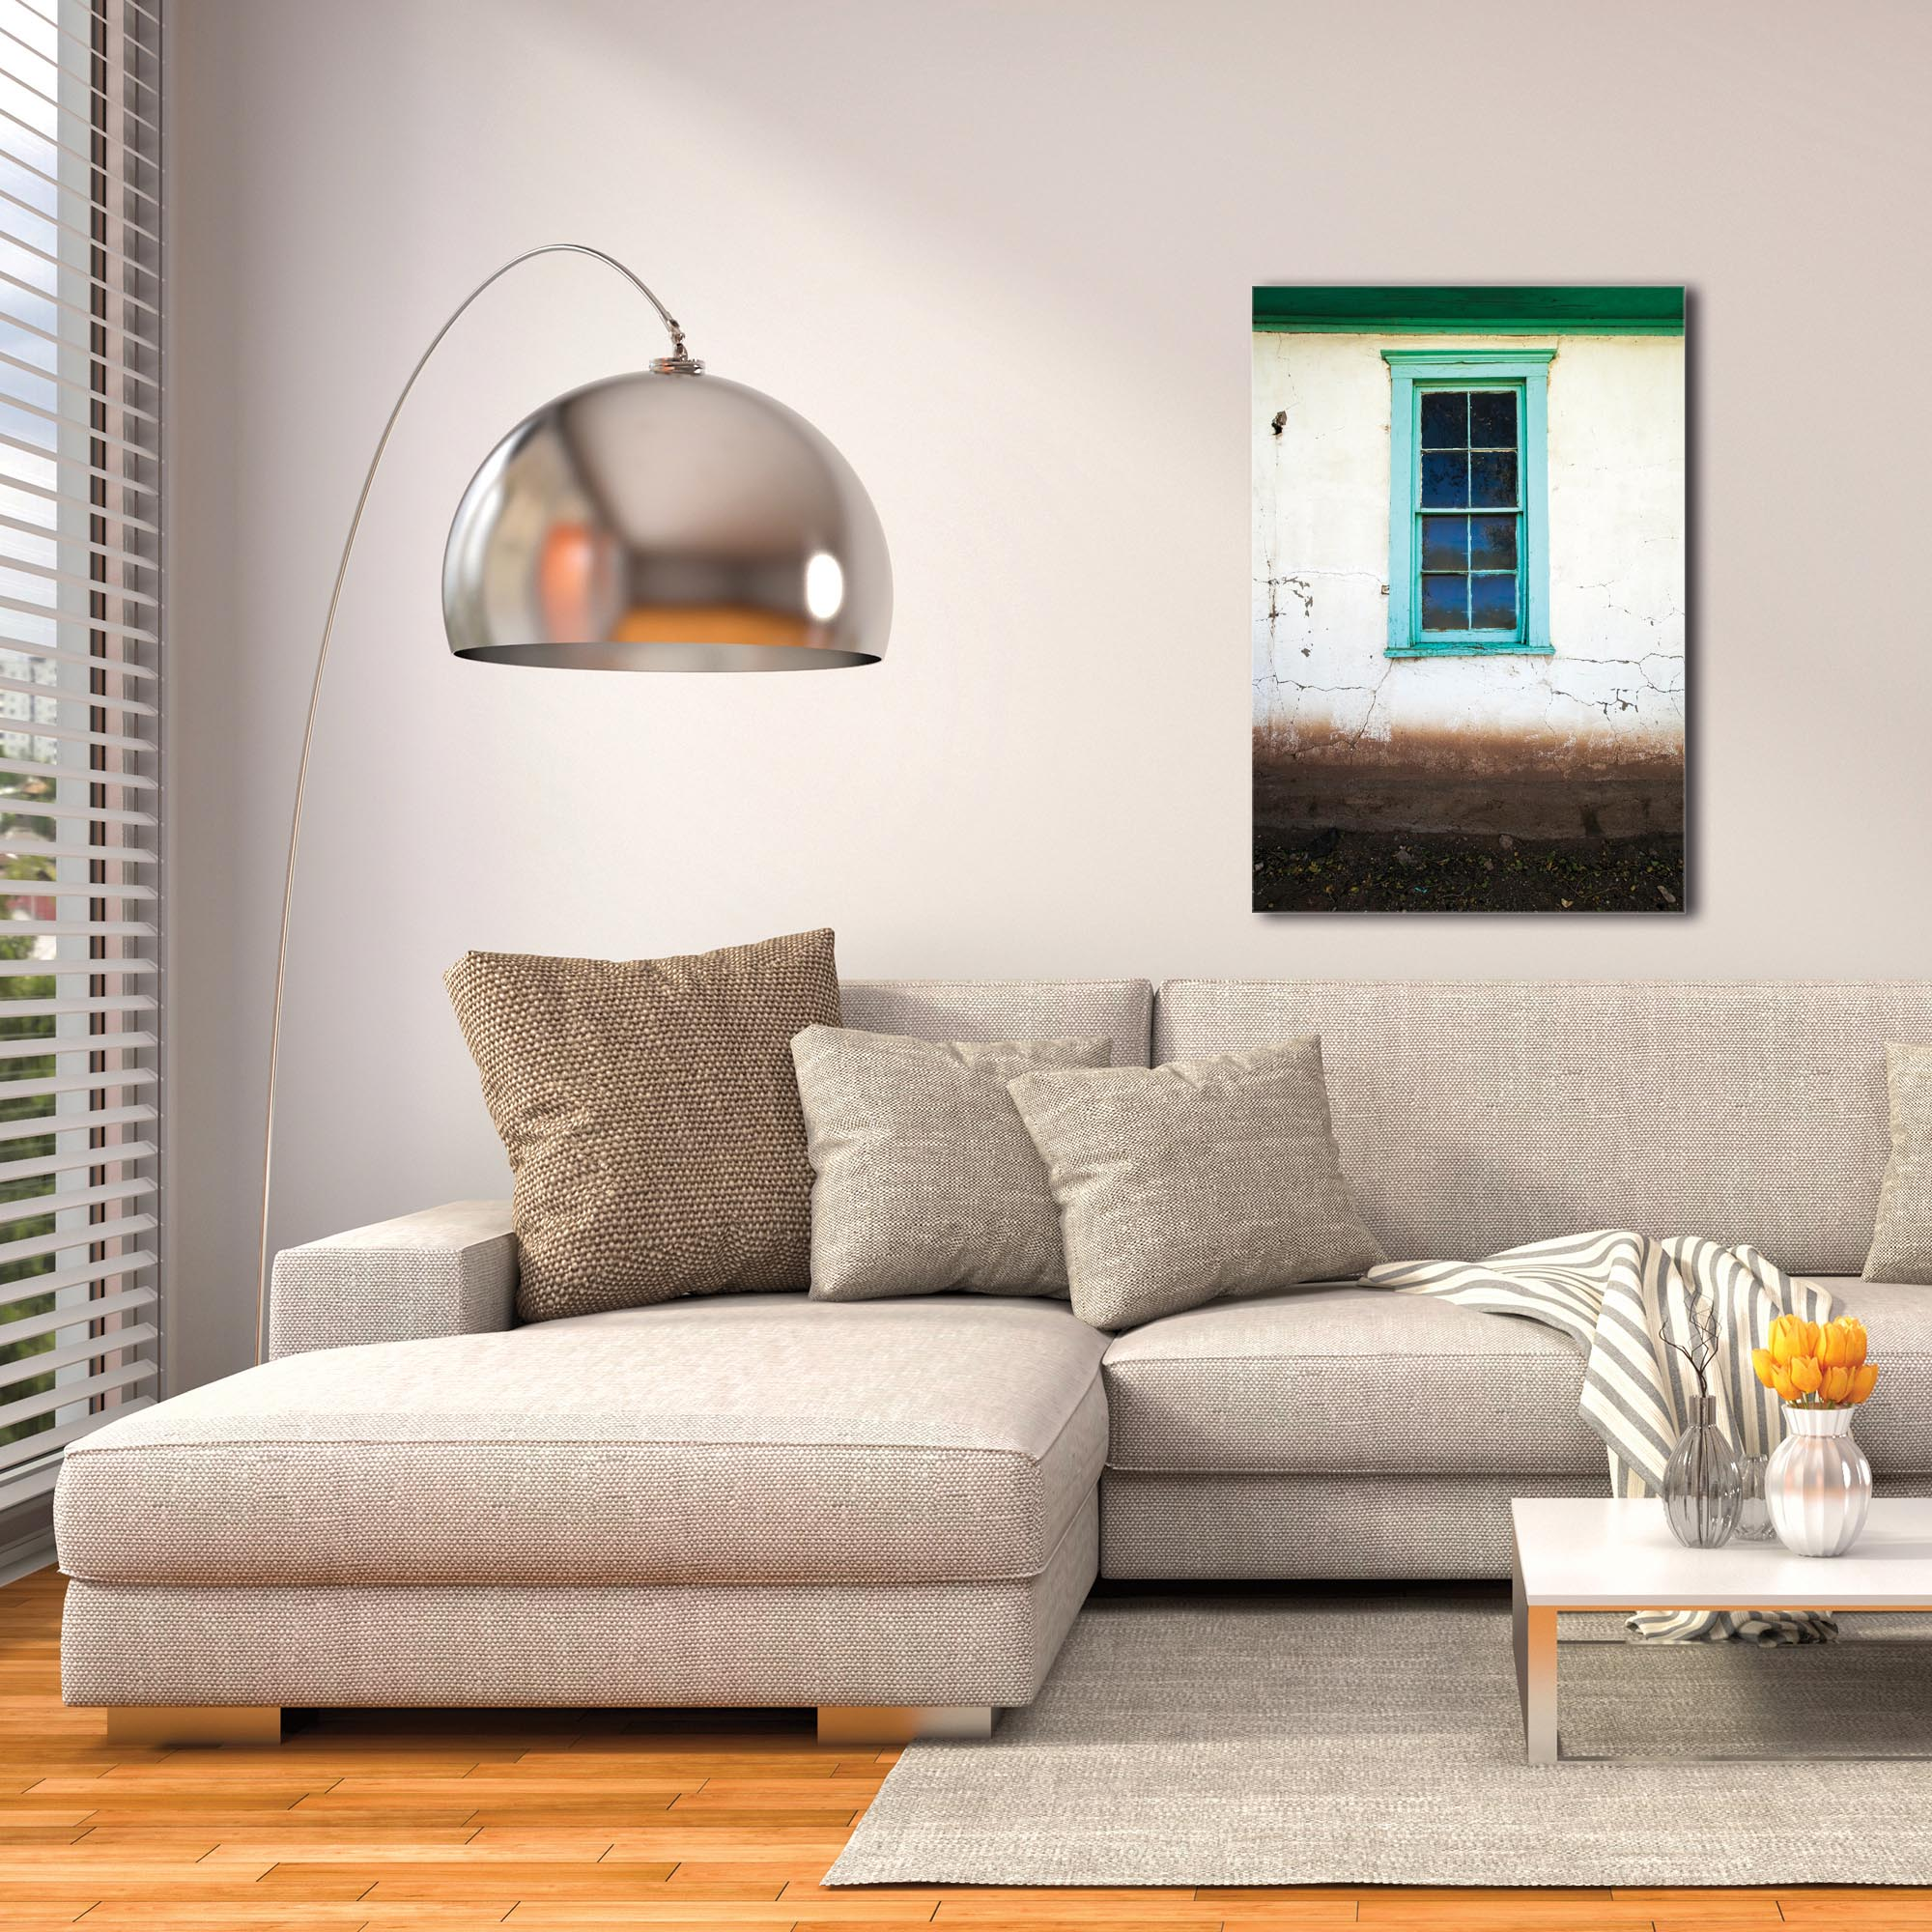 Eclectic Wall Art 'Bay Window' - Architecture Decor on Metal or Plexiglass - Image 3